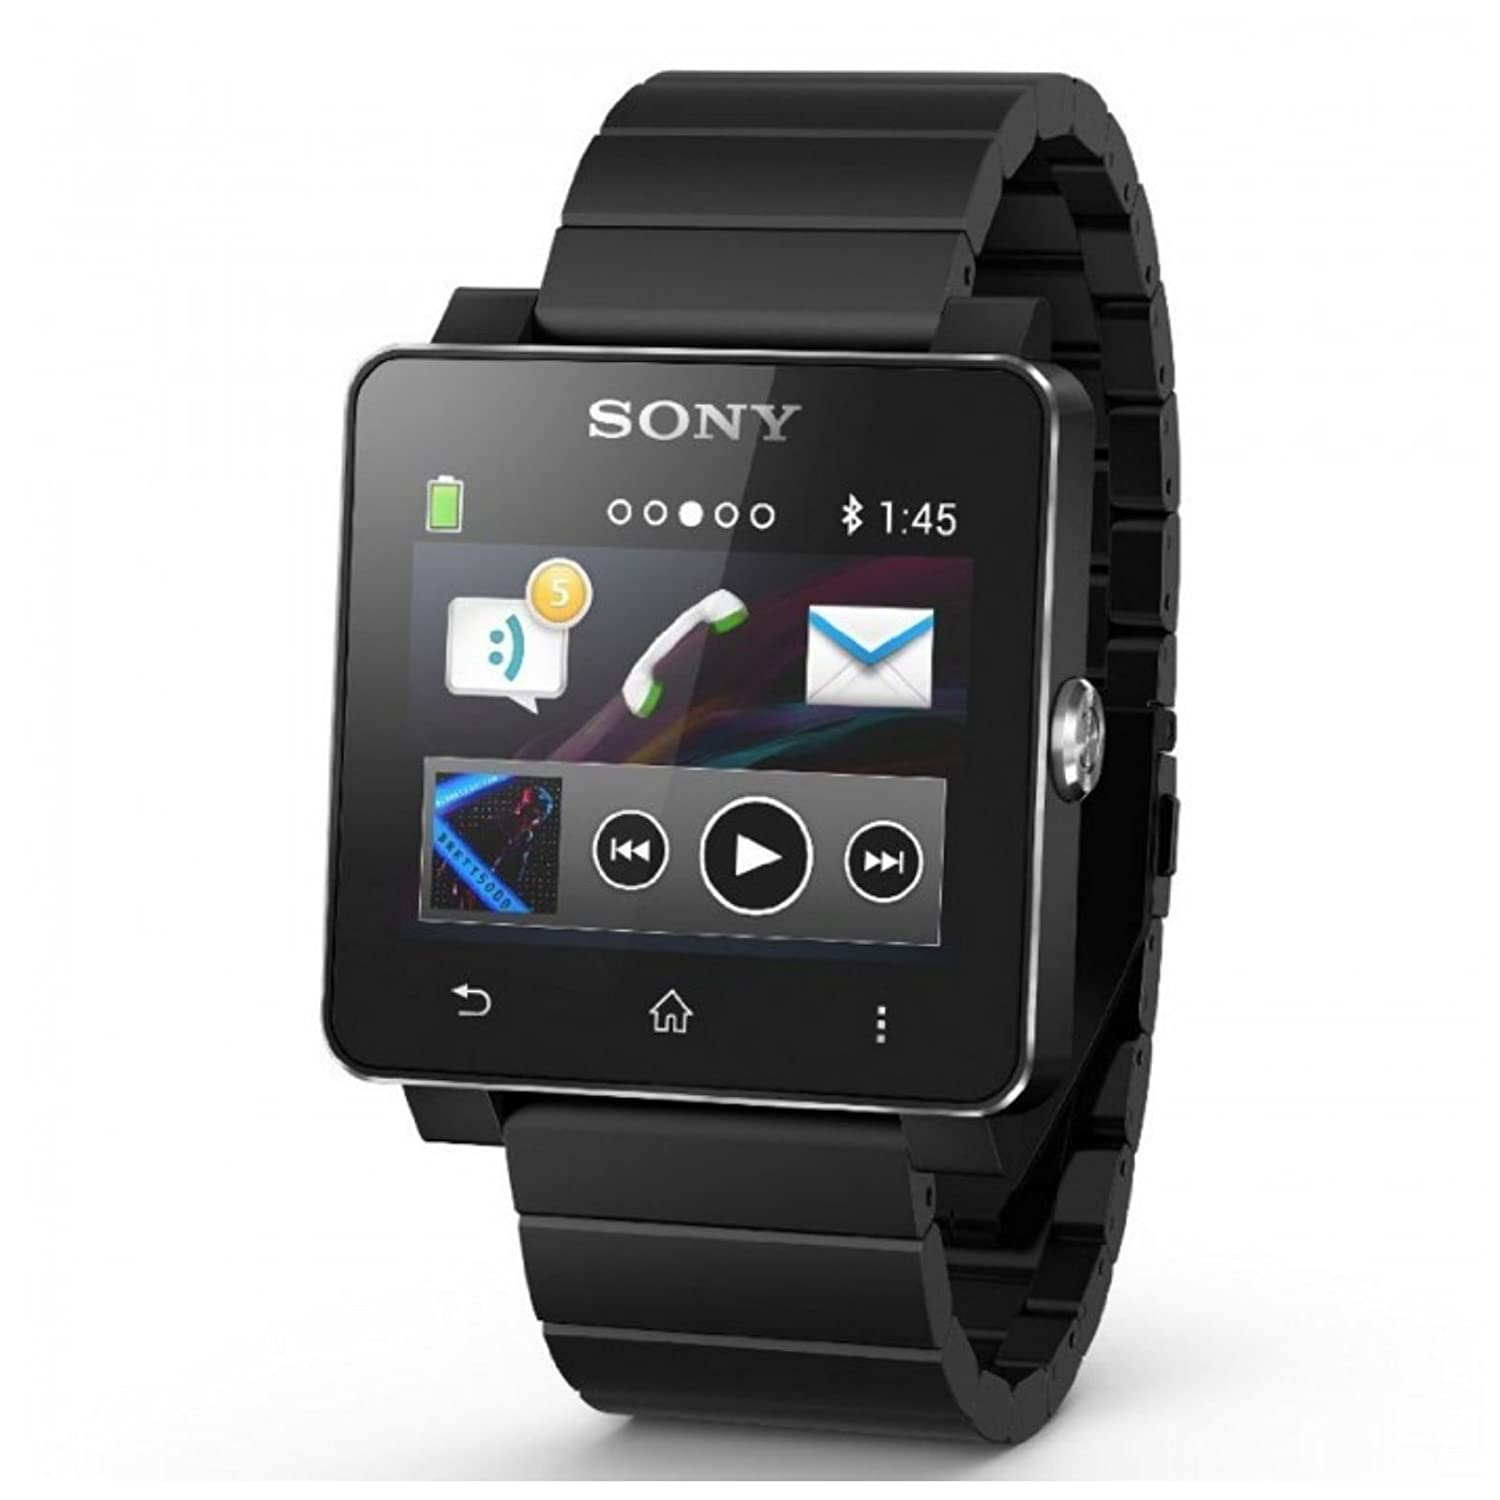 Sony SW2 SmartWatch 2 Bluetooth Water Resistant Android Watch Metal Wristband Stainless Steel Wristband....